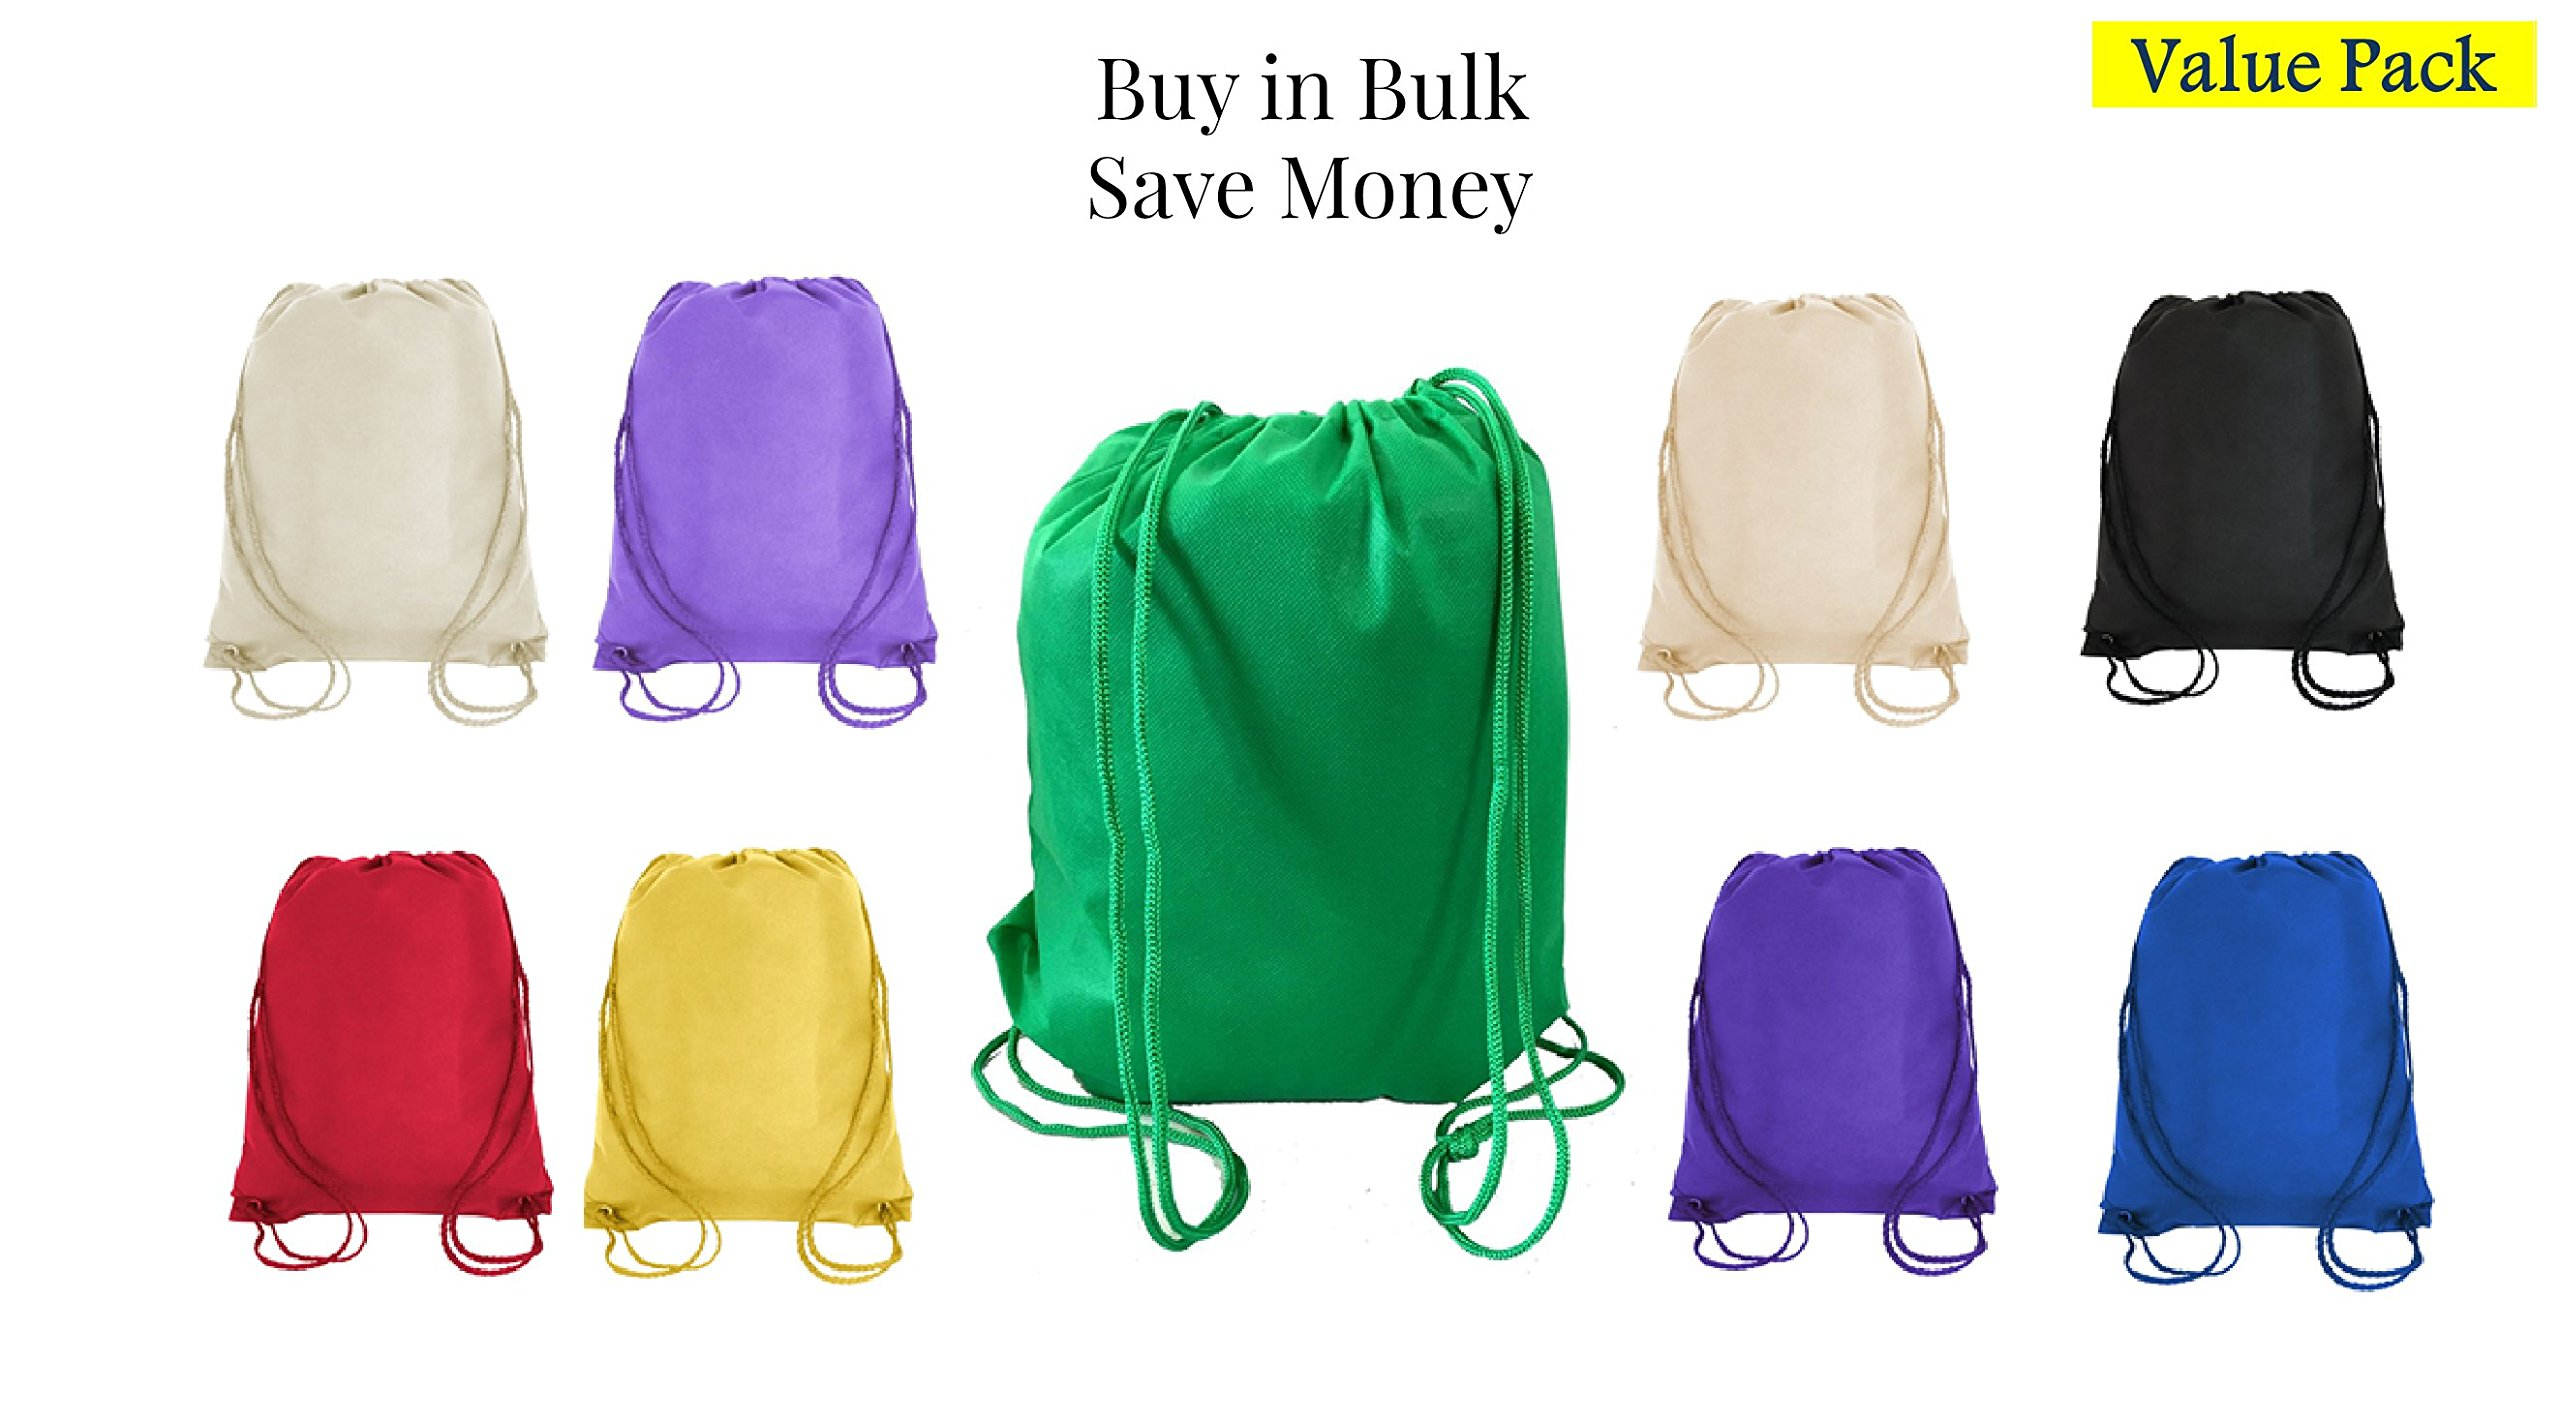 Value Pack- 200 Pack Mix Color Drawstring Bags, Small Size Junior Cinch Packs, Non-Woven Backpack (Mix) (Mix)